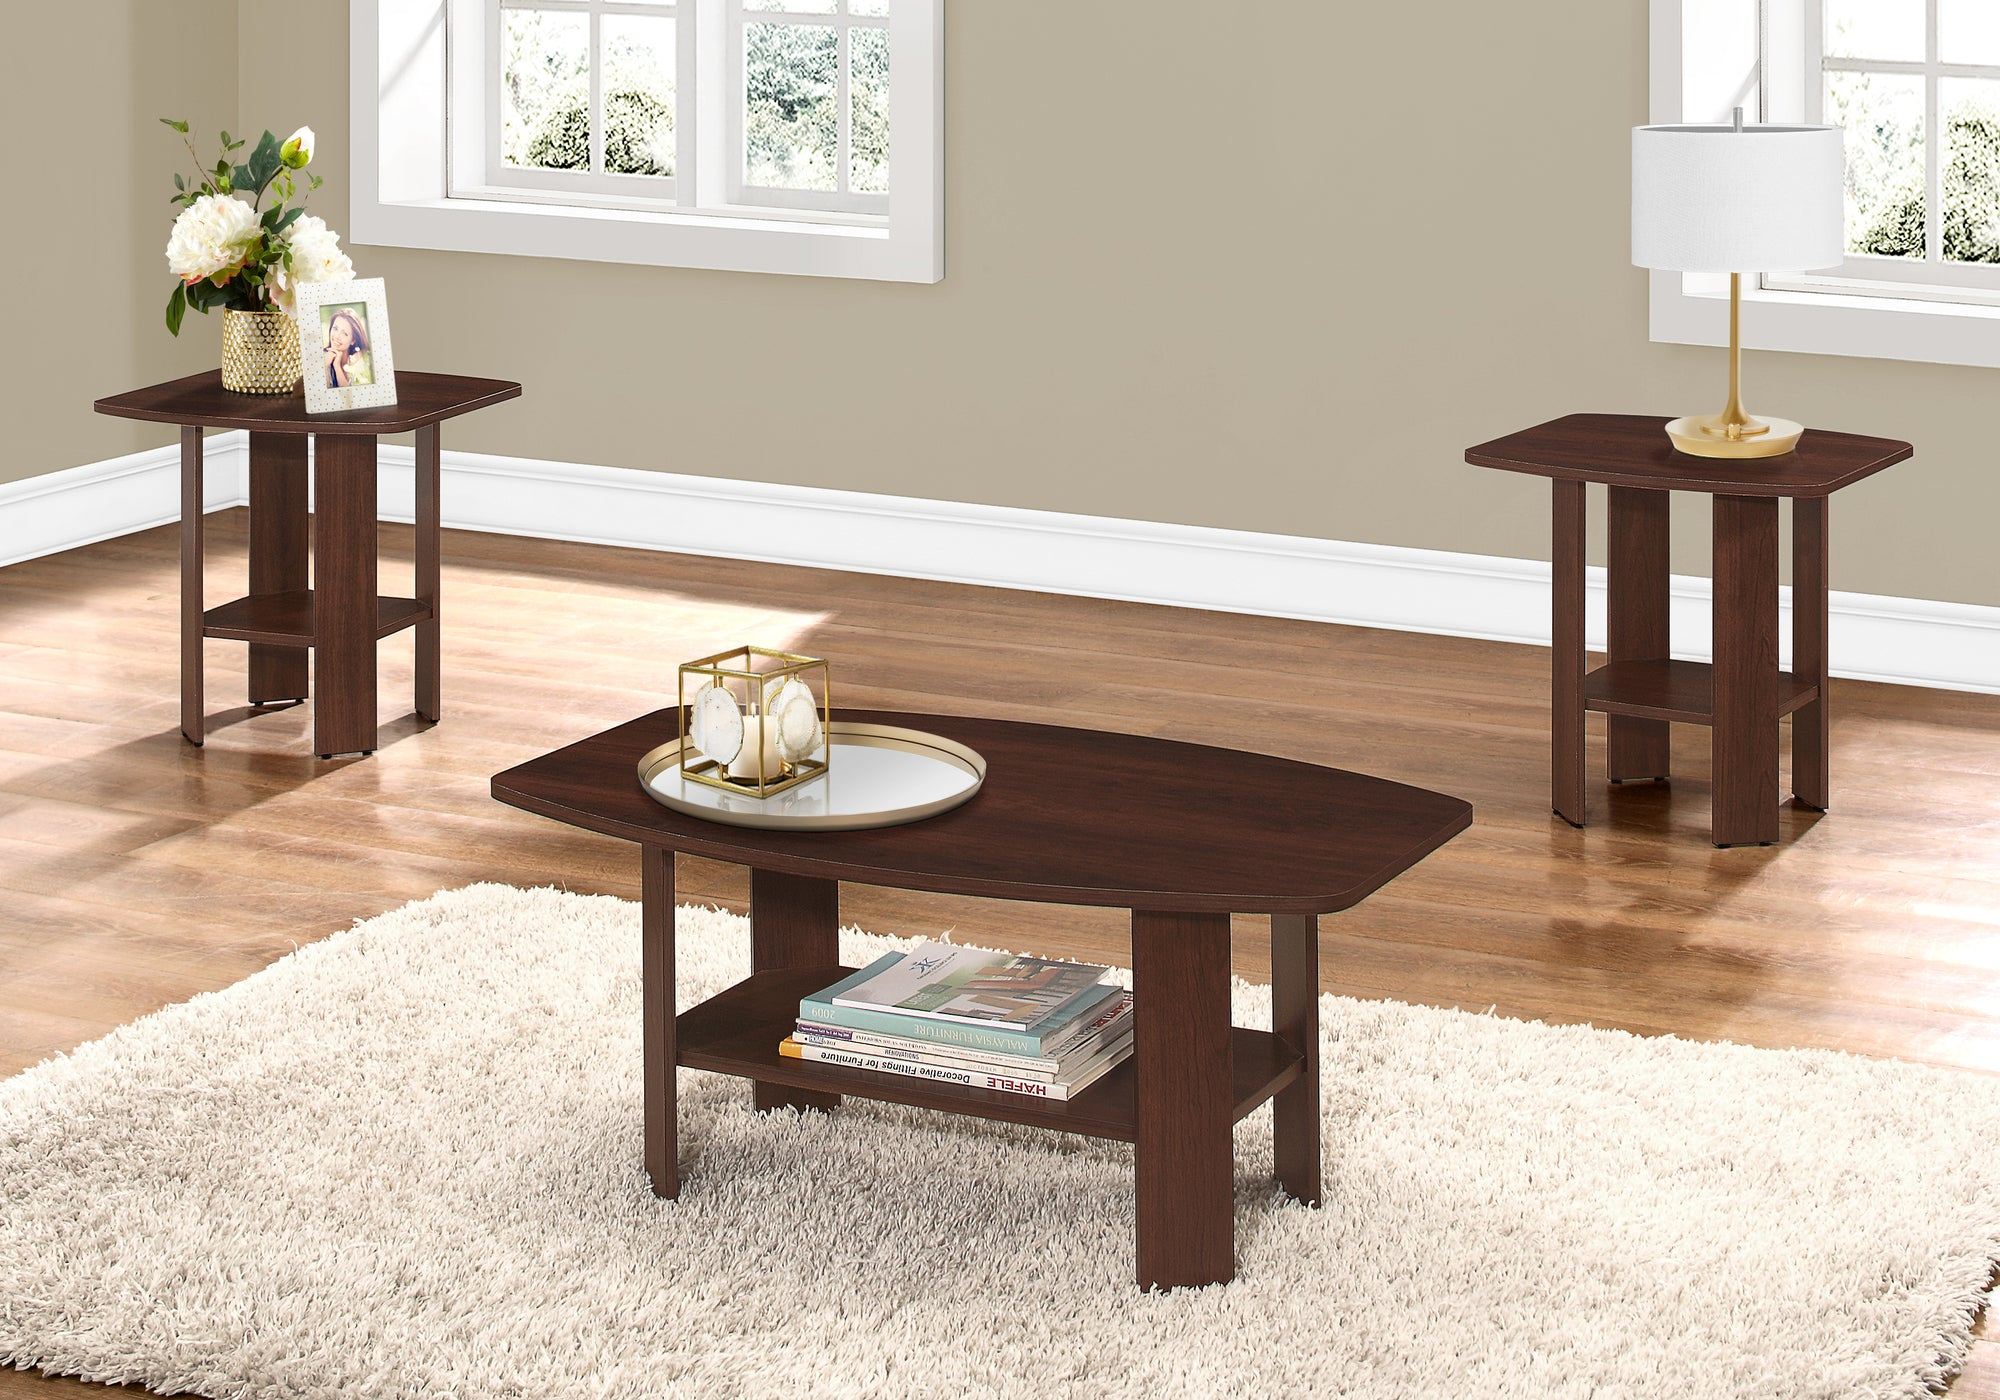 I 7923P - TABLE SET - 3PCS SET - CHERRY